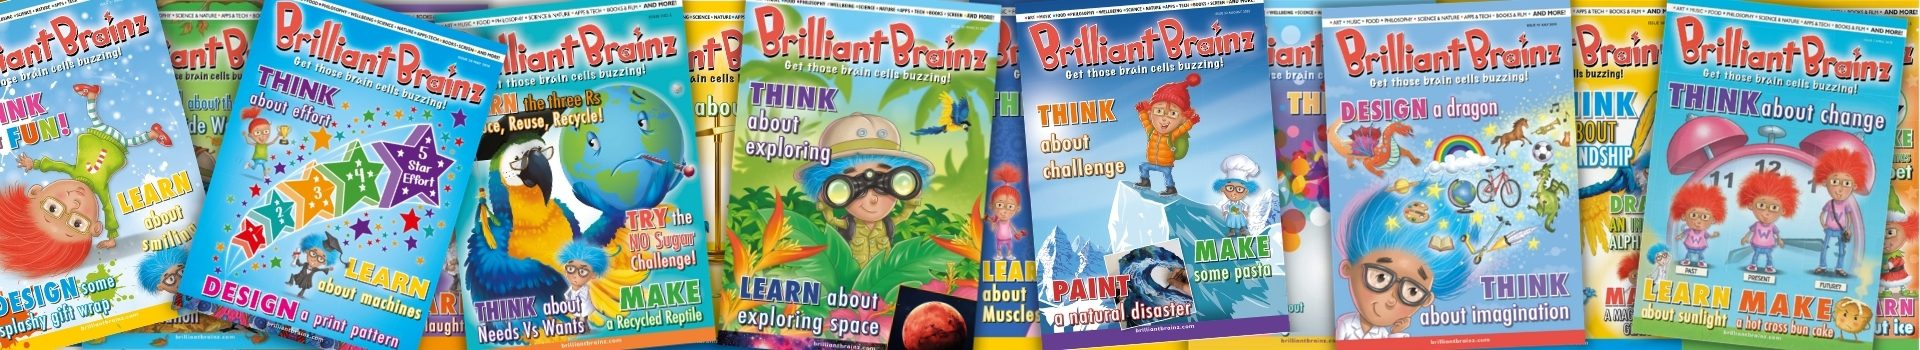 Brilliant Brainz Children's Magazine Subscription